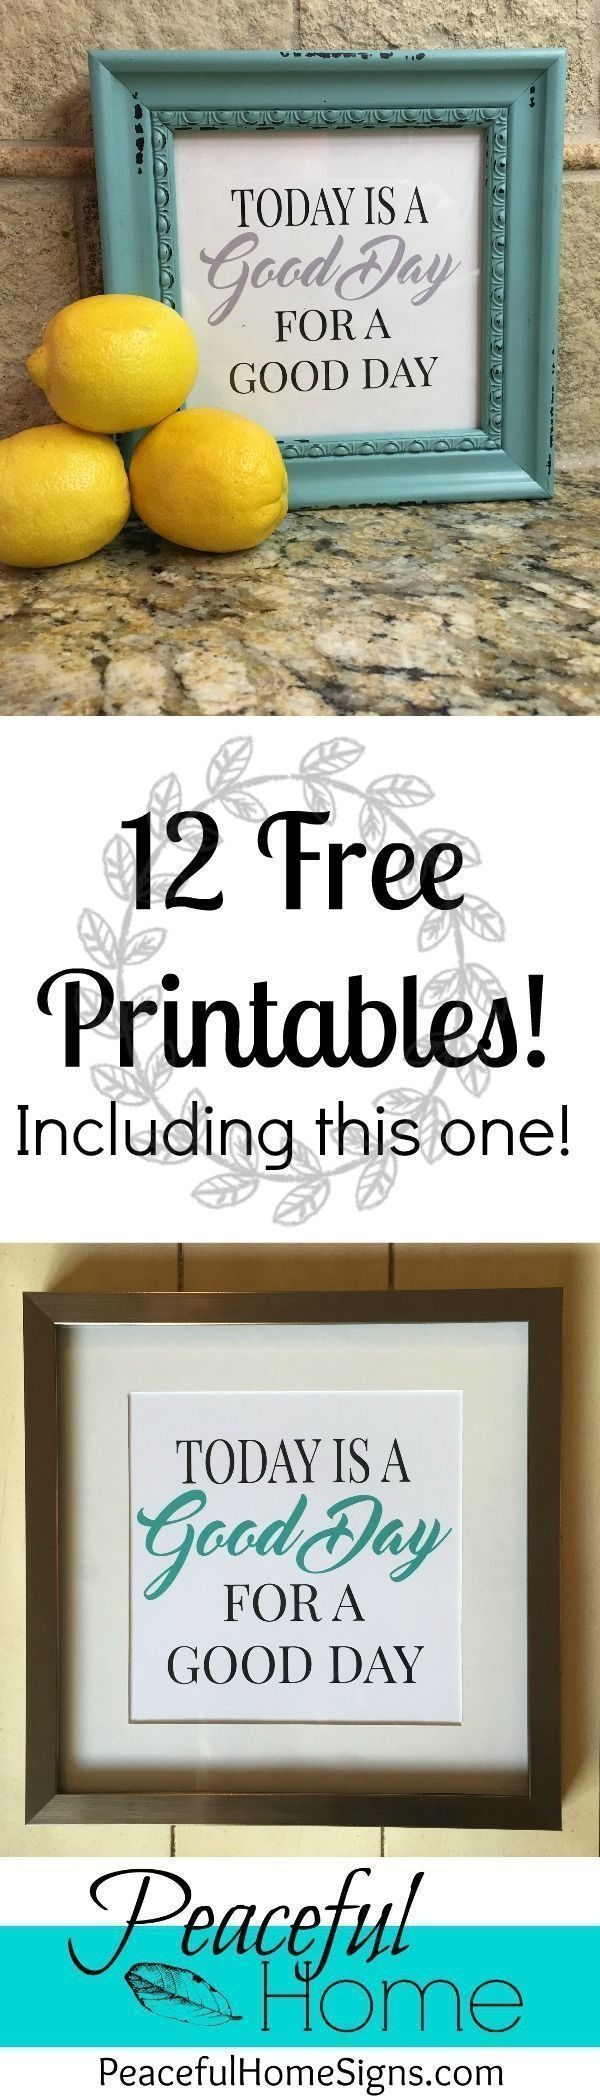 12 Free Printables To Spruce Up Your Decor!   Free Printable With - Free Printables For Home Decor